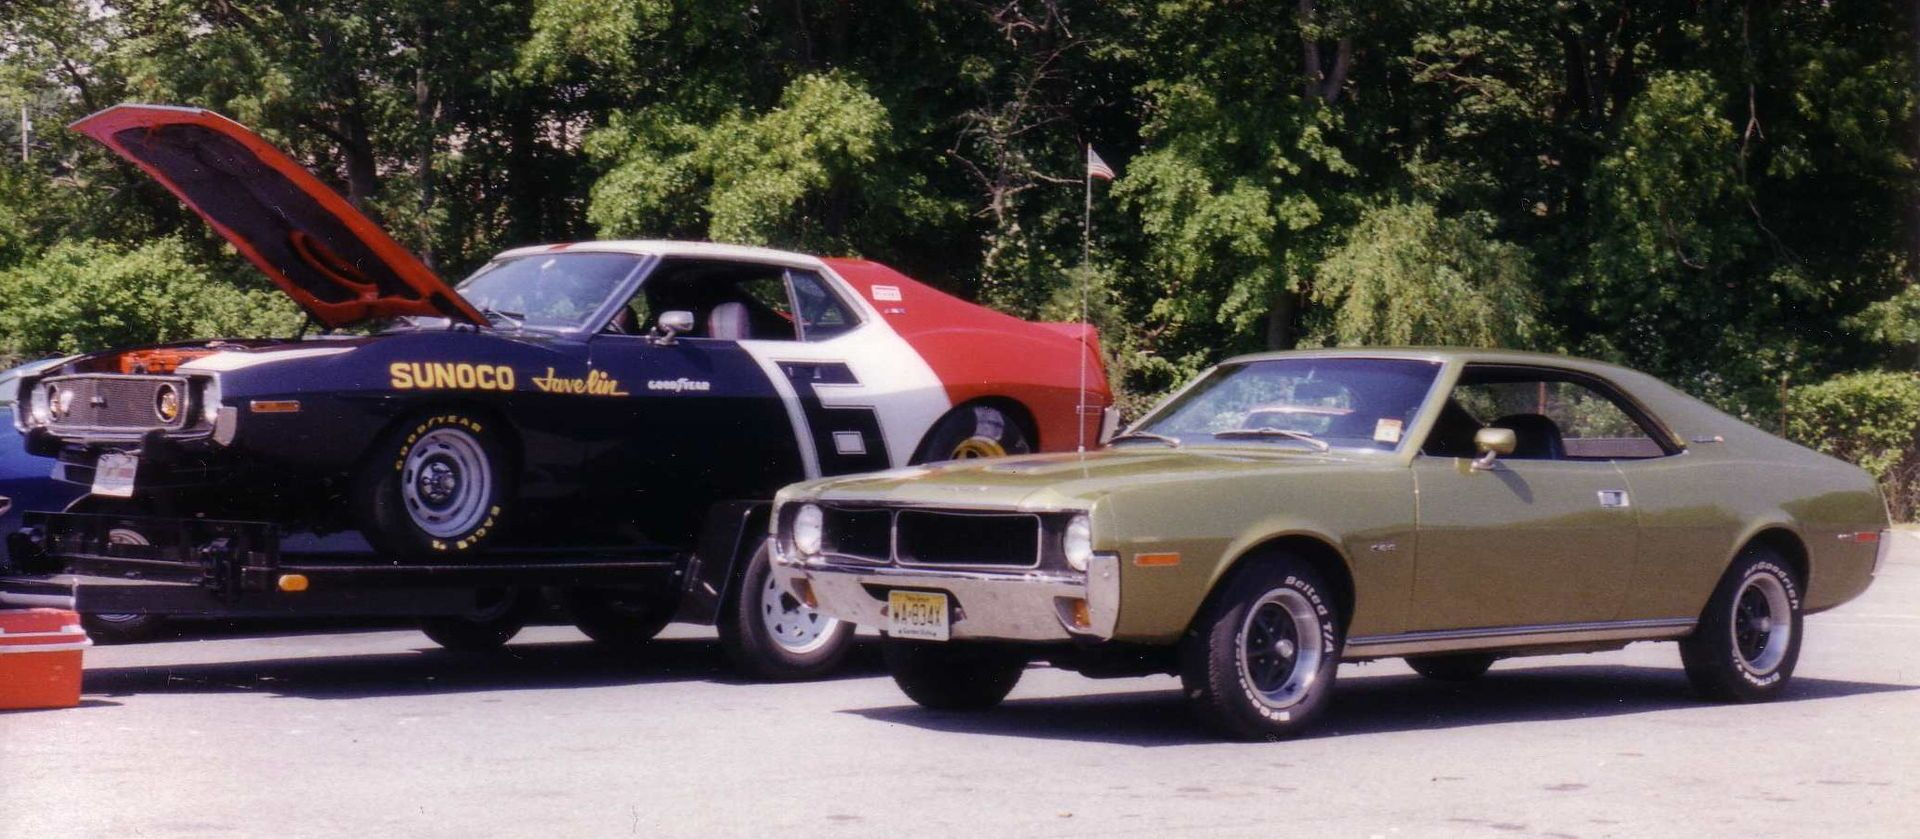 Sunoco racing AMC Javelin on an open car hauling trailer and a 1970 ...